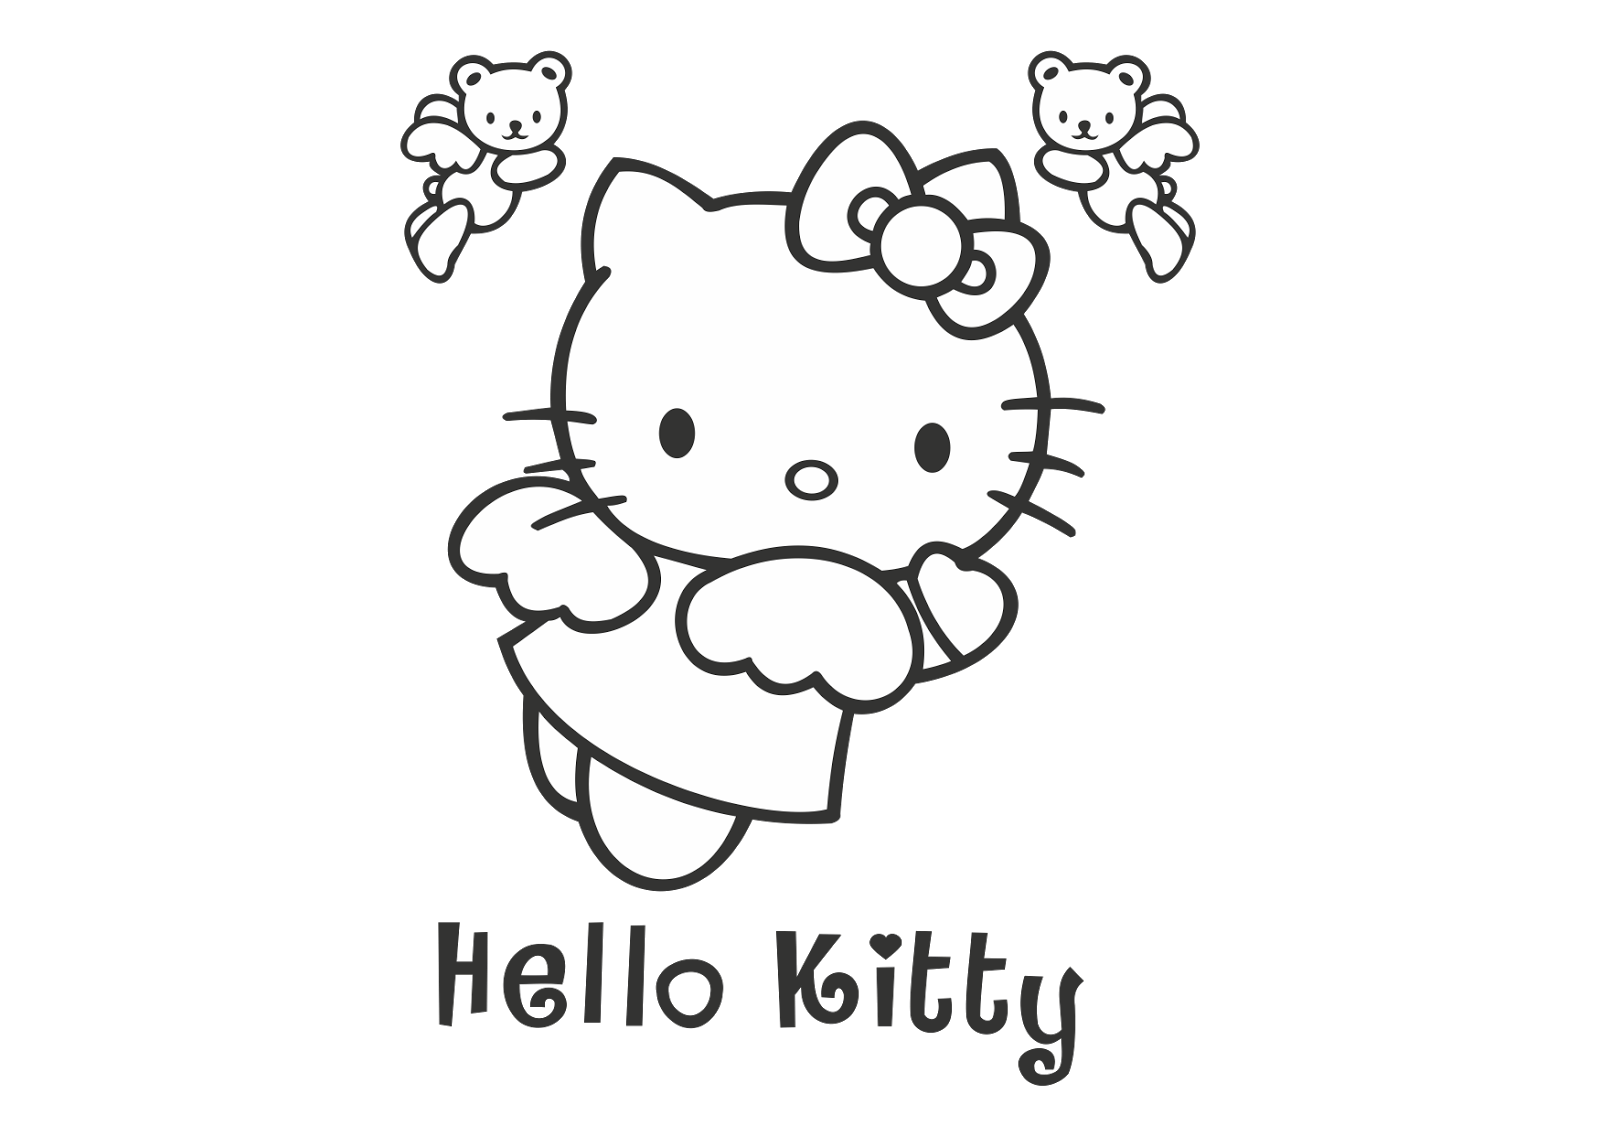 Hello Kitty Logo Vector (Black White) download free